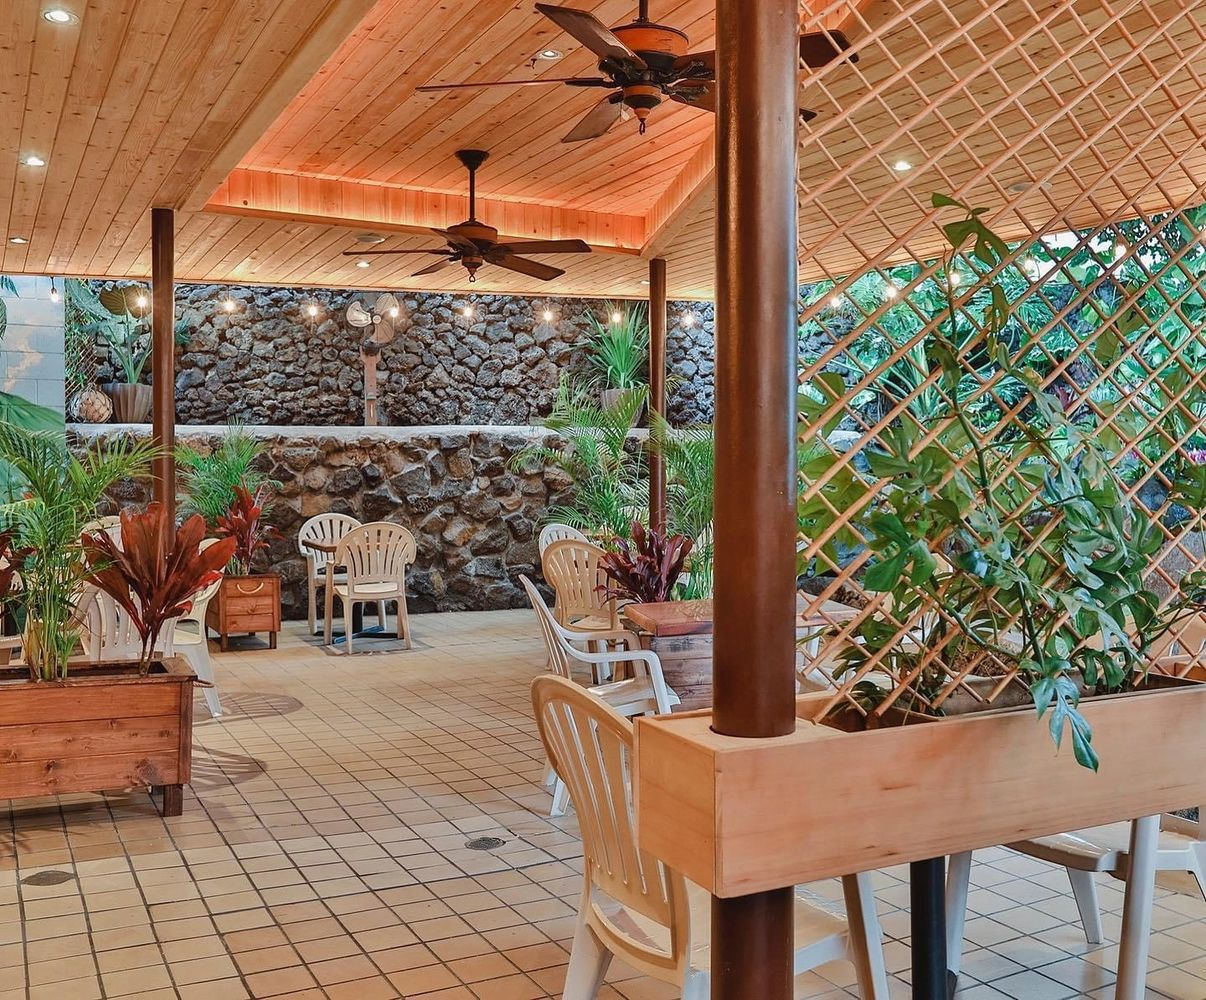 Outdoor lanai dining. Take-out also available.